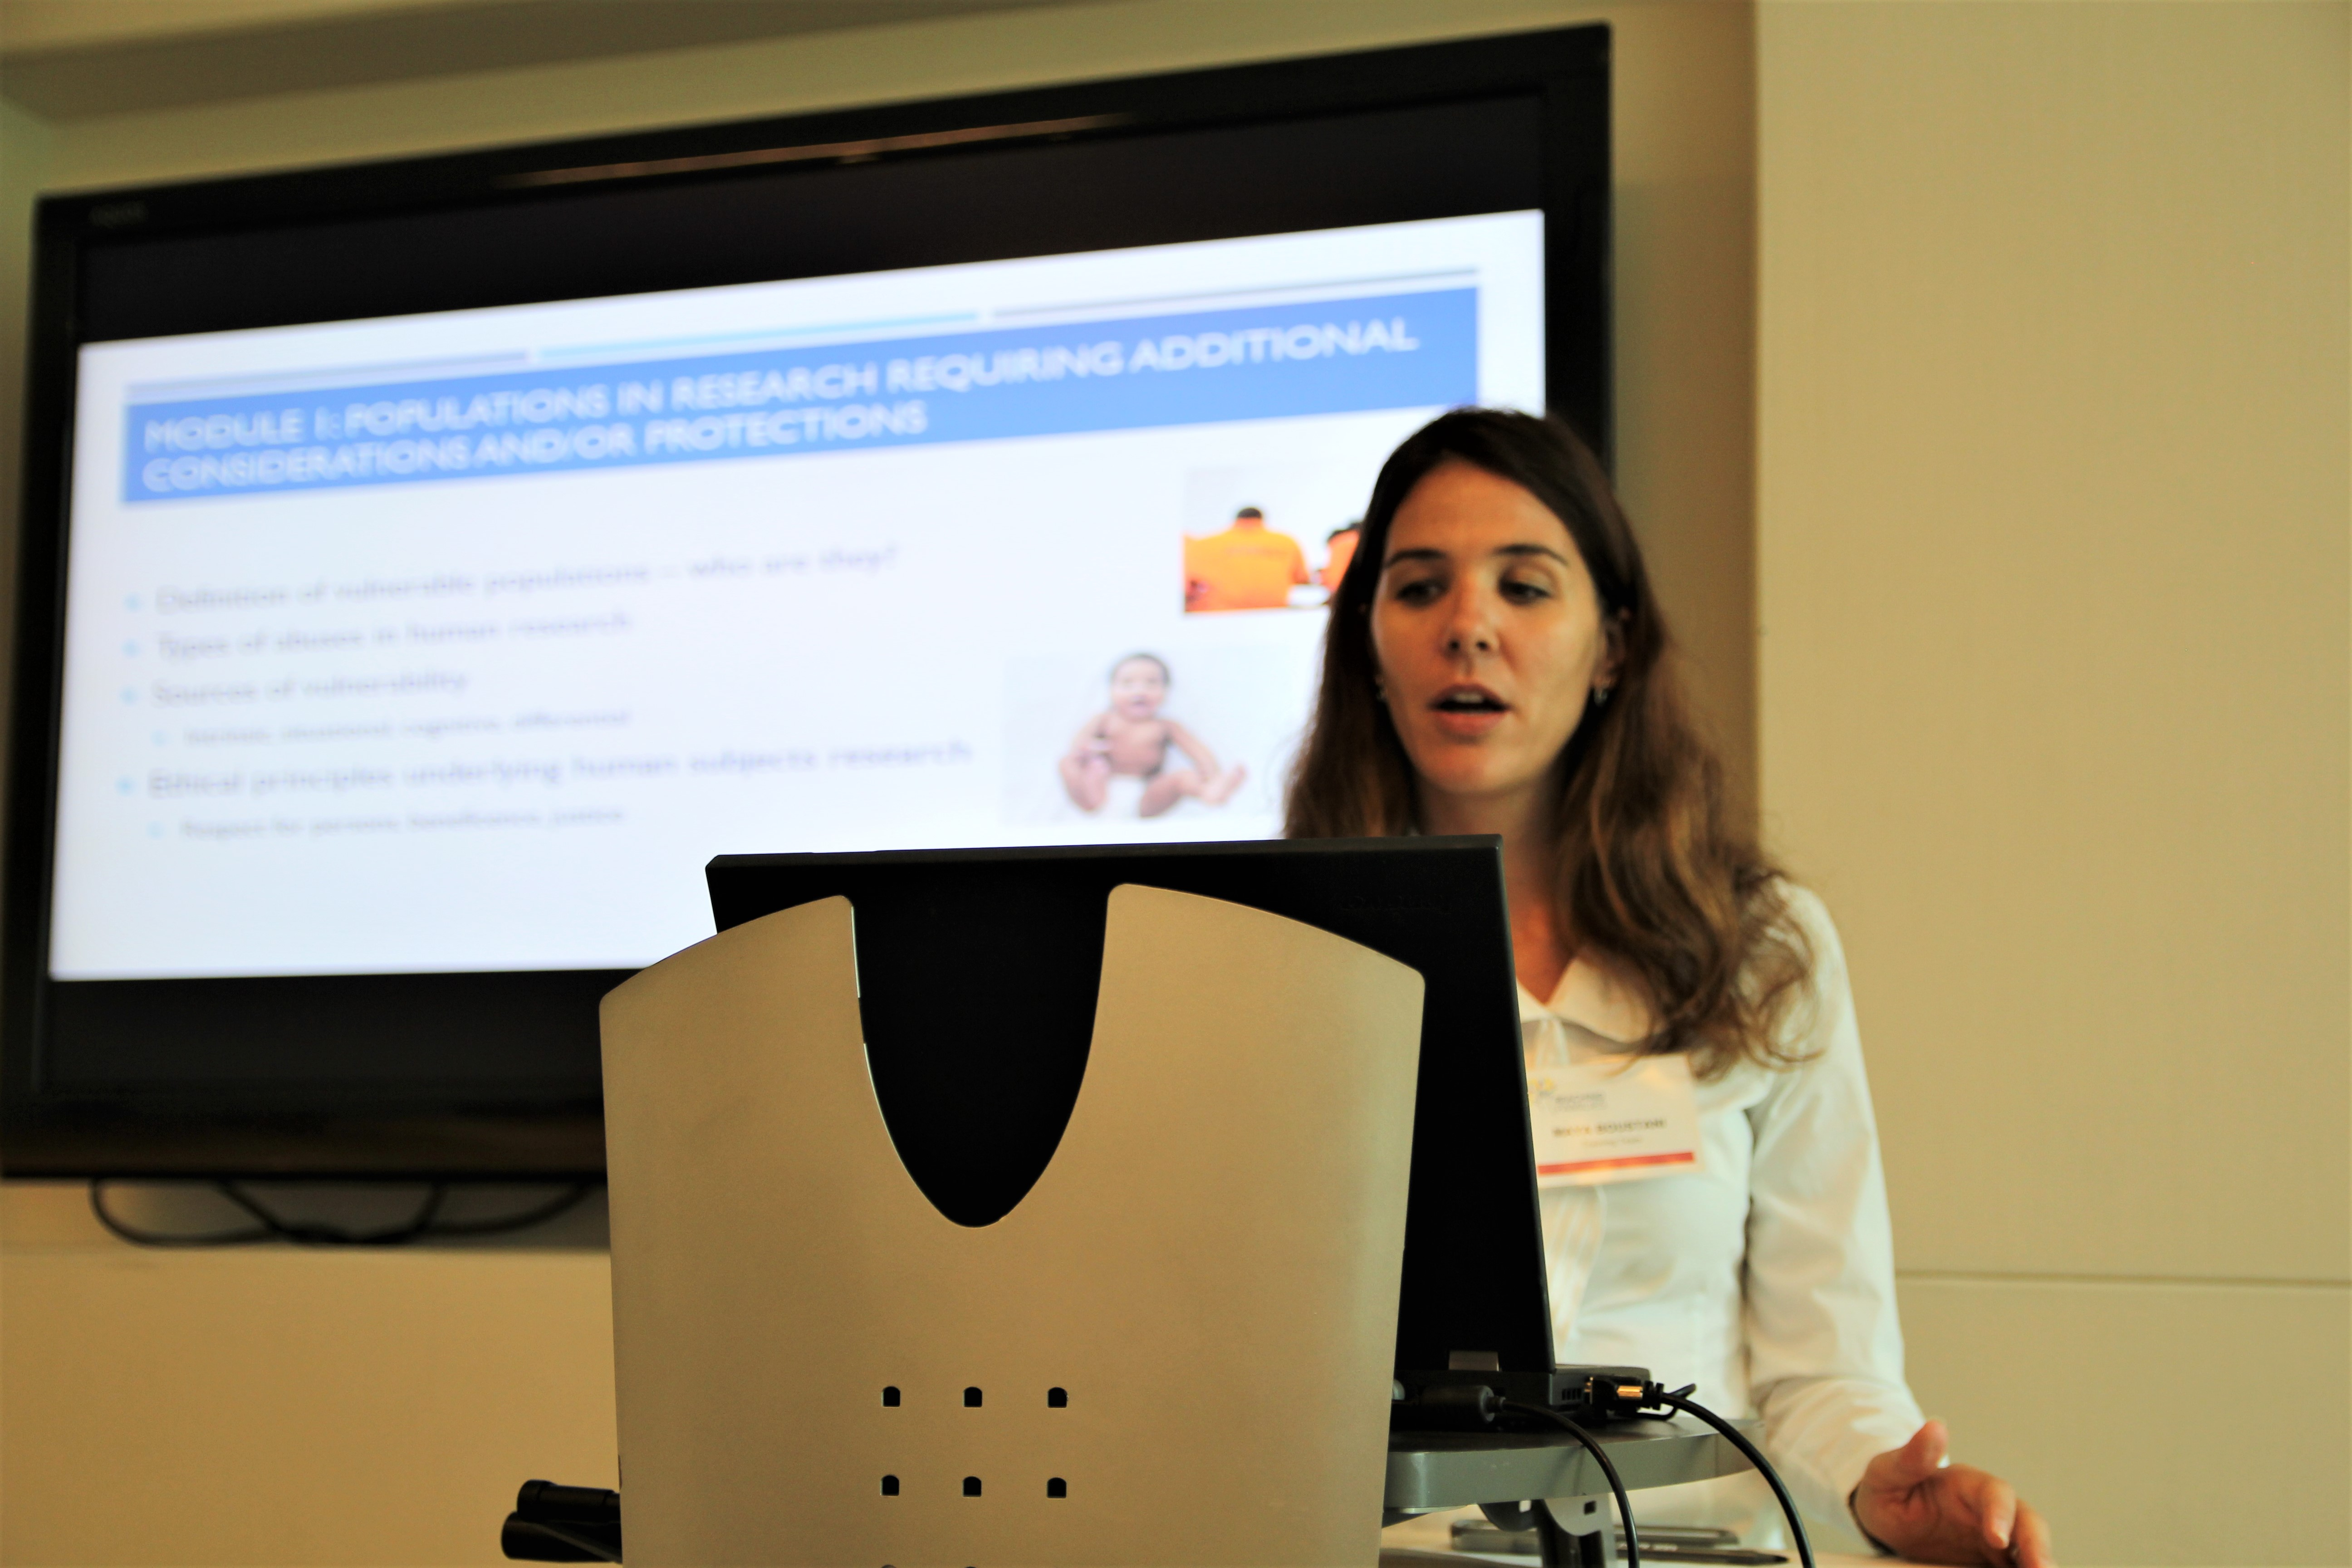 Dr. Maya Boustani at a training event for clinicians